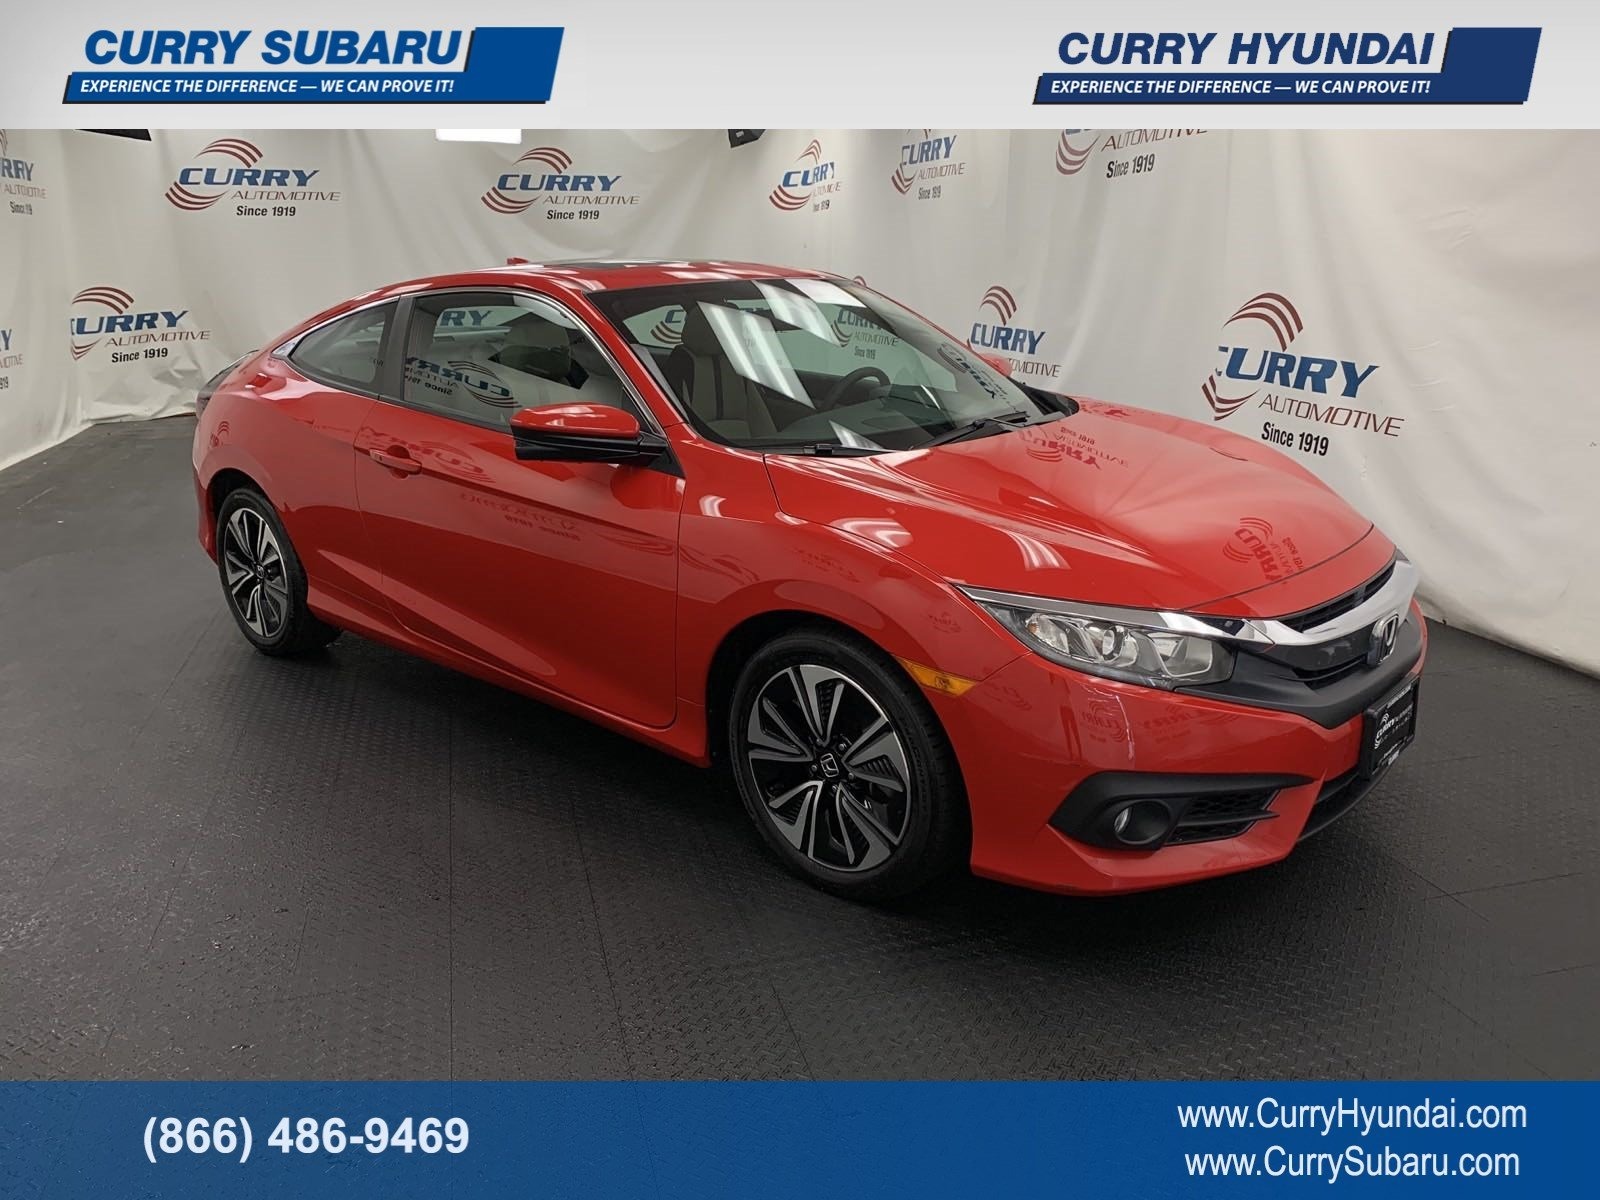 Honda Civic Coupe For Sale >> Used 2016 Honda Civic Coupe For Sale In Cortlandt Manor Ny Near Peekskill Mahopac Croton On Hudson Yorktown Heights Ny Vin 2hgfc3b39gh360434